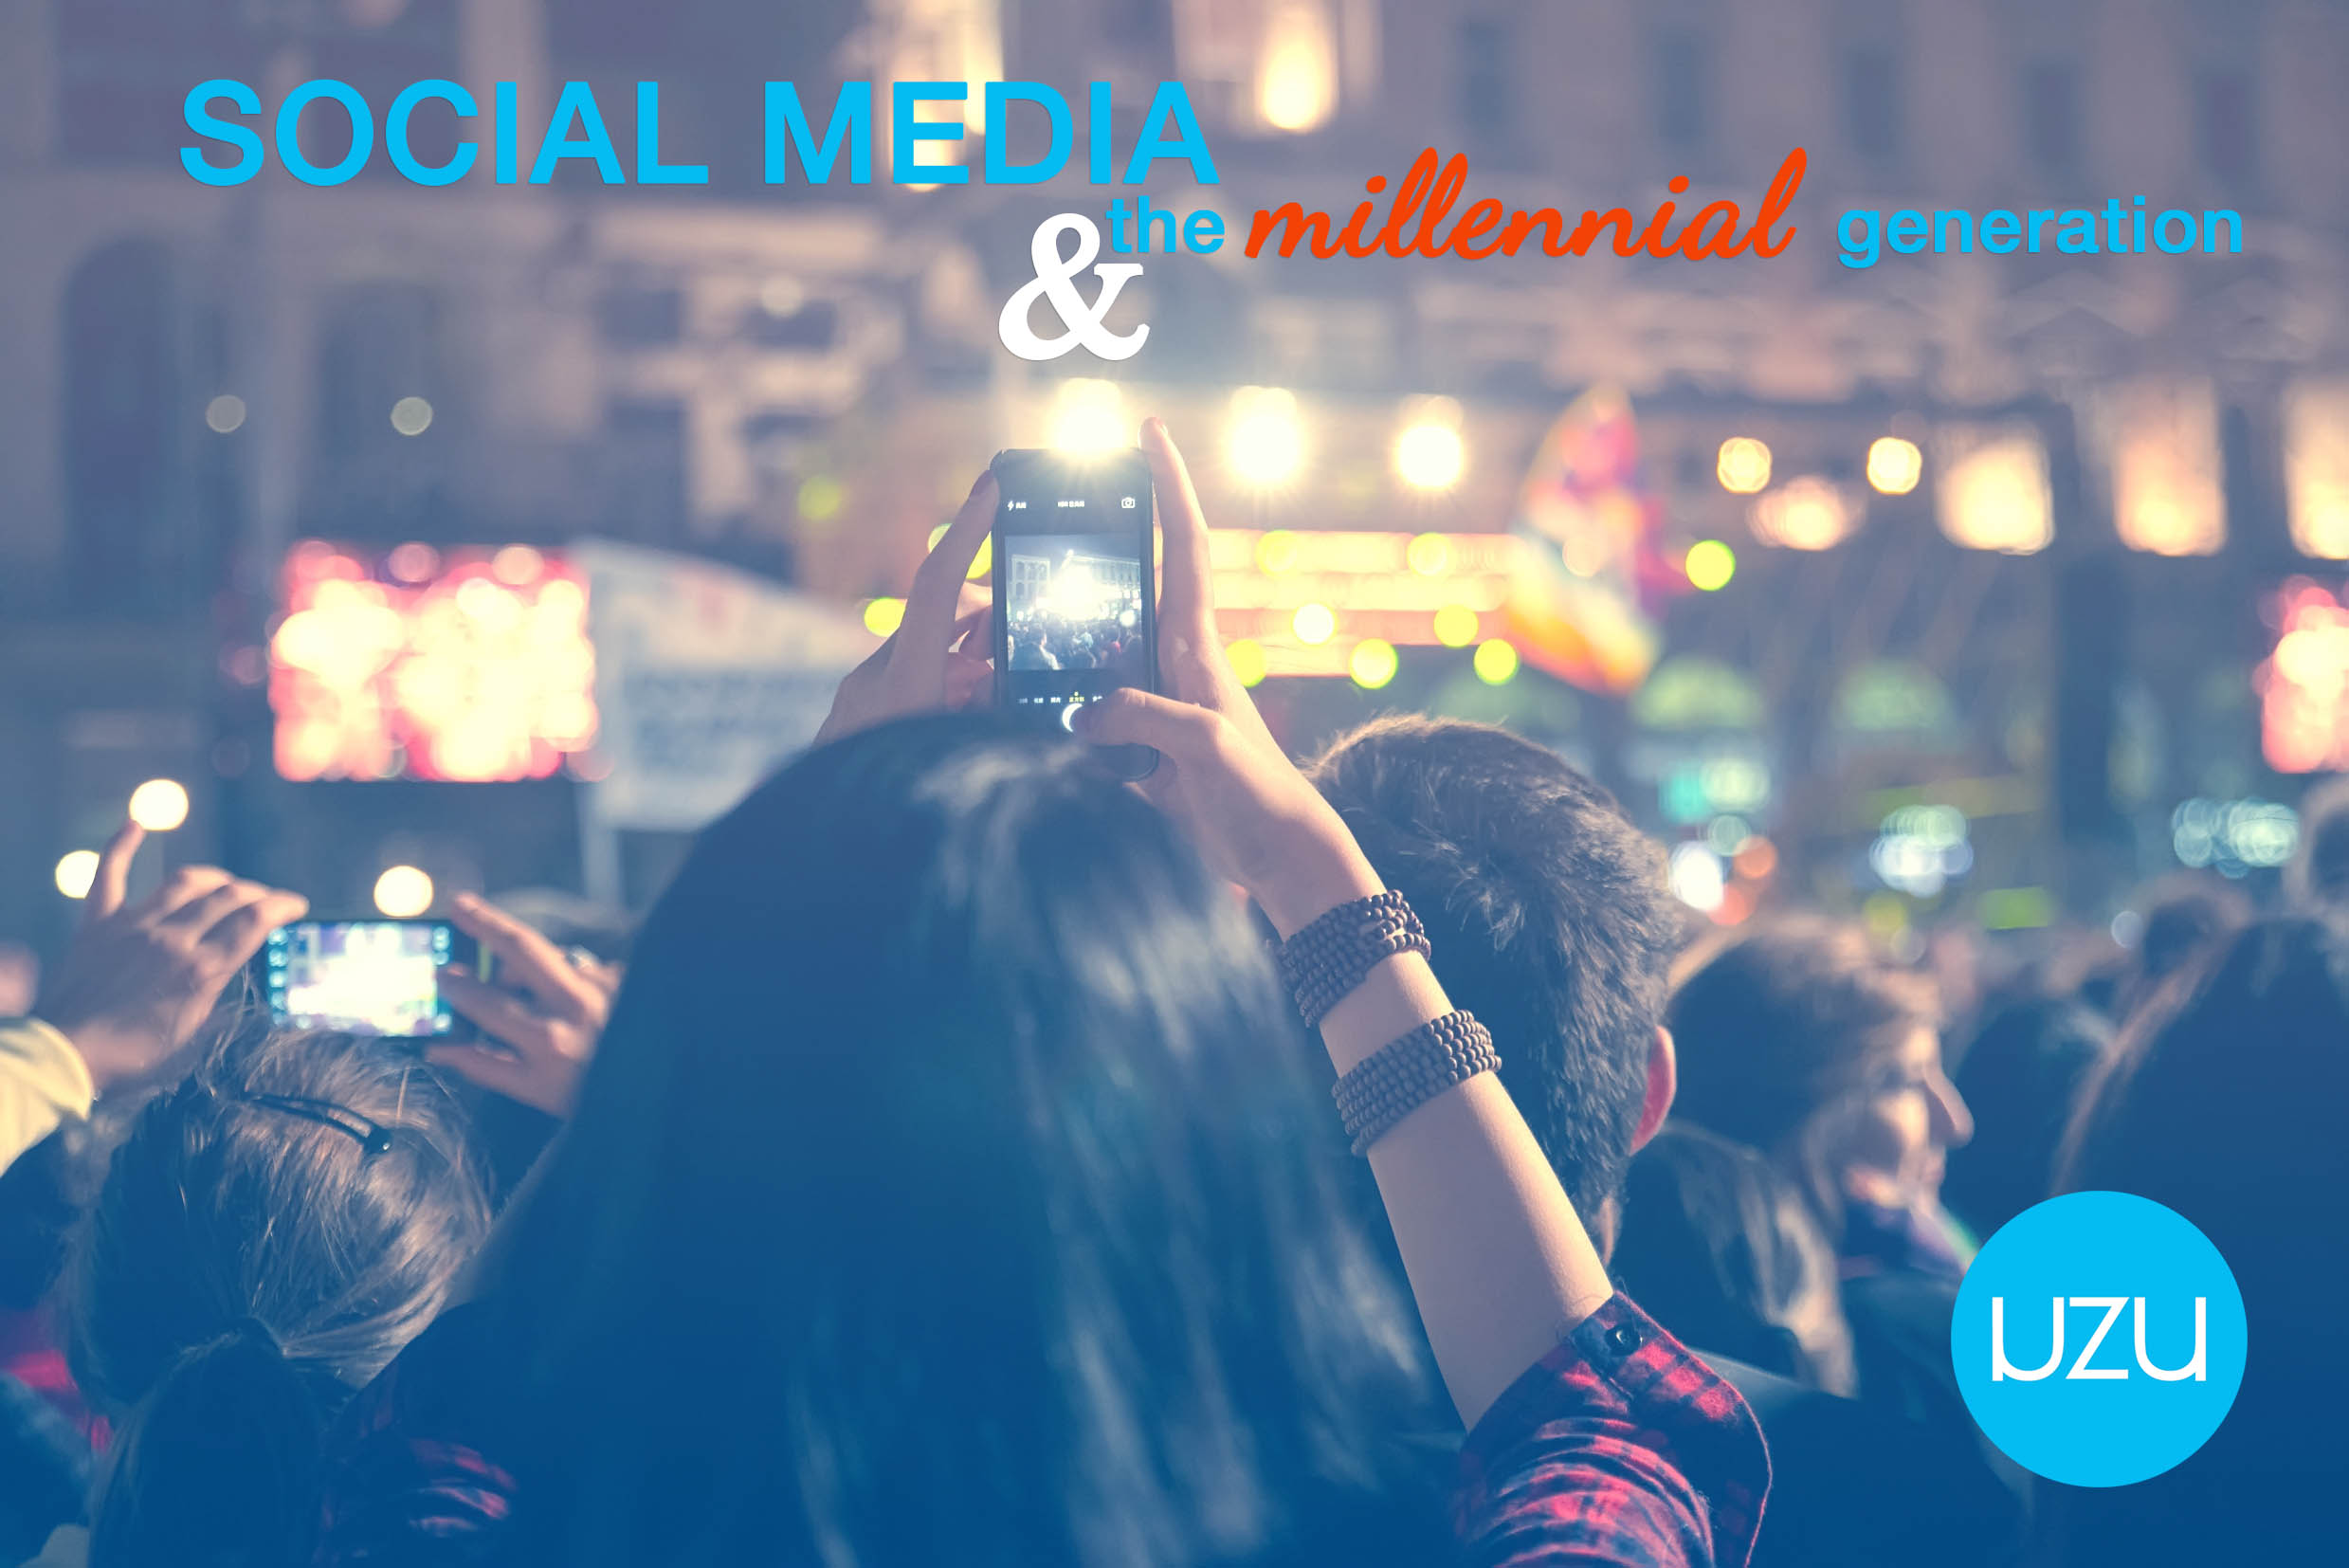 Social Media and the Millennial Generation